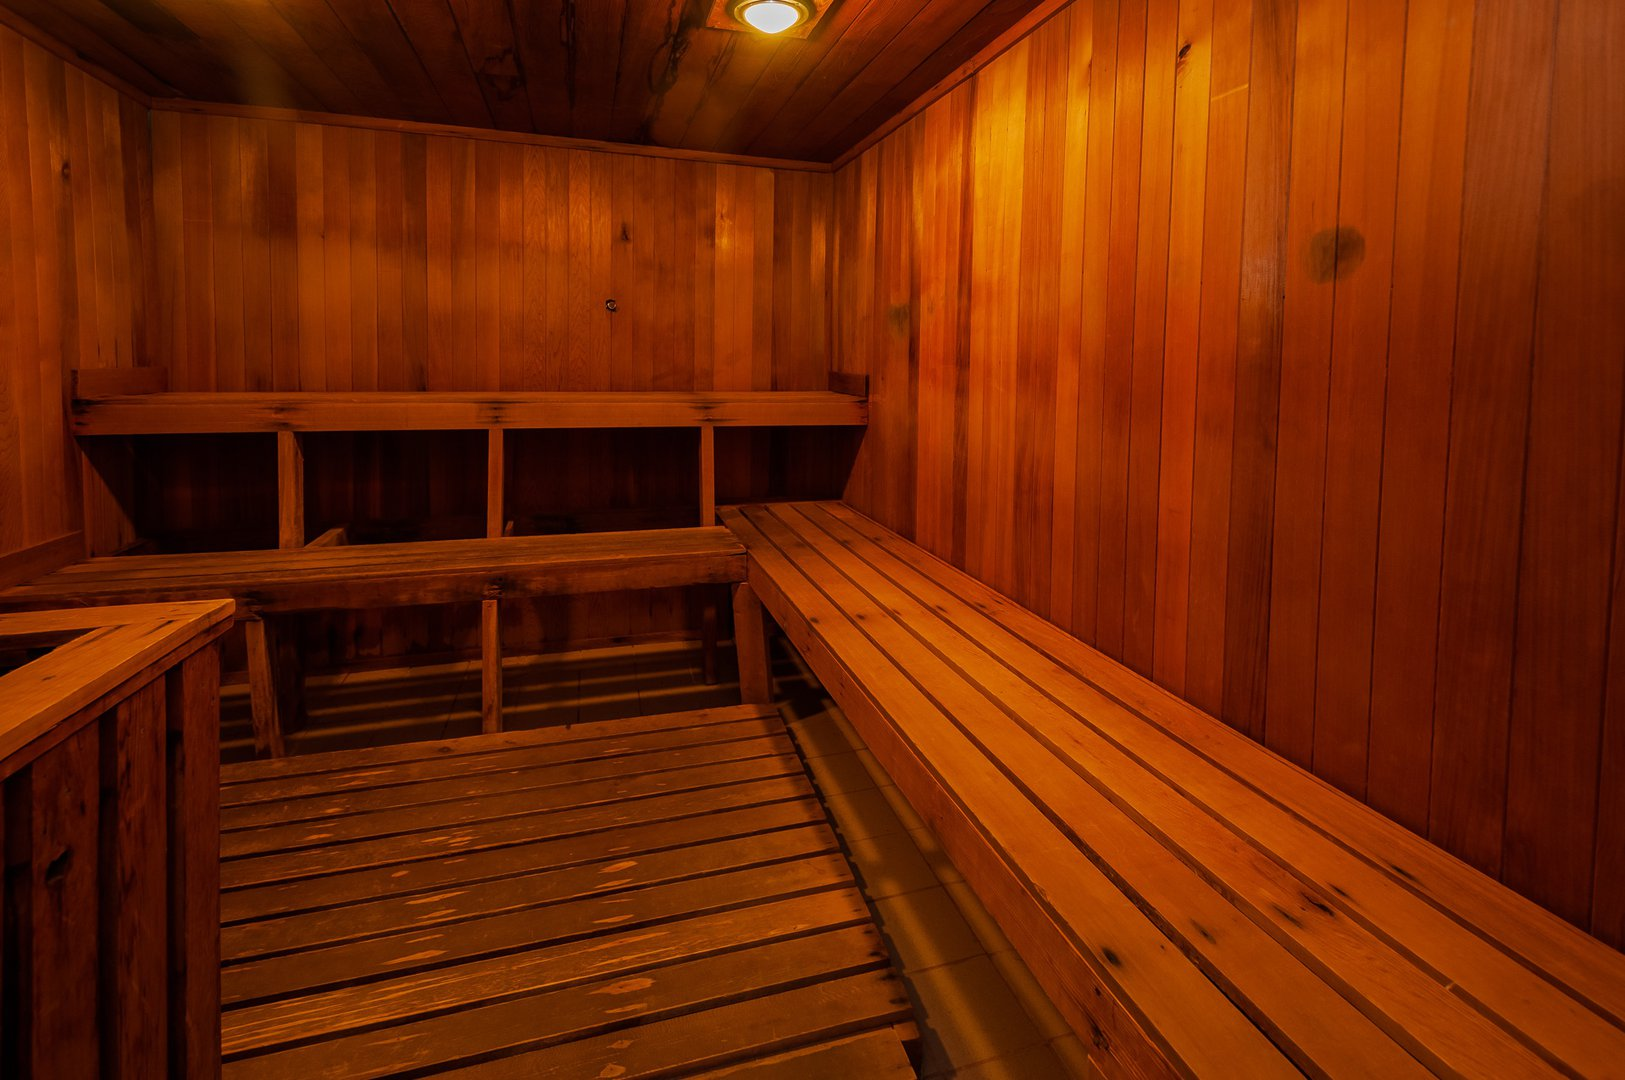 High-Rise Apartment for rent at 350 Chemin Sainte-Foy, bureau 1803, Québec City, QC. This is the sauna with vaulted ceiling and deck.